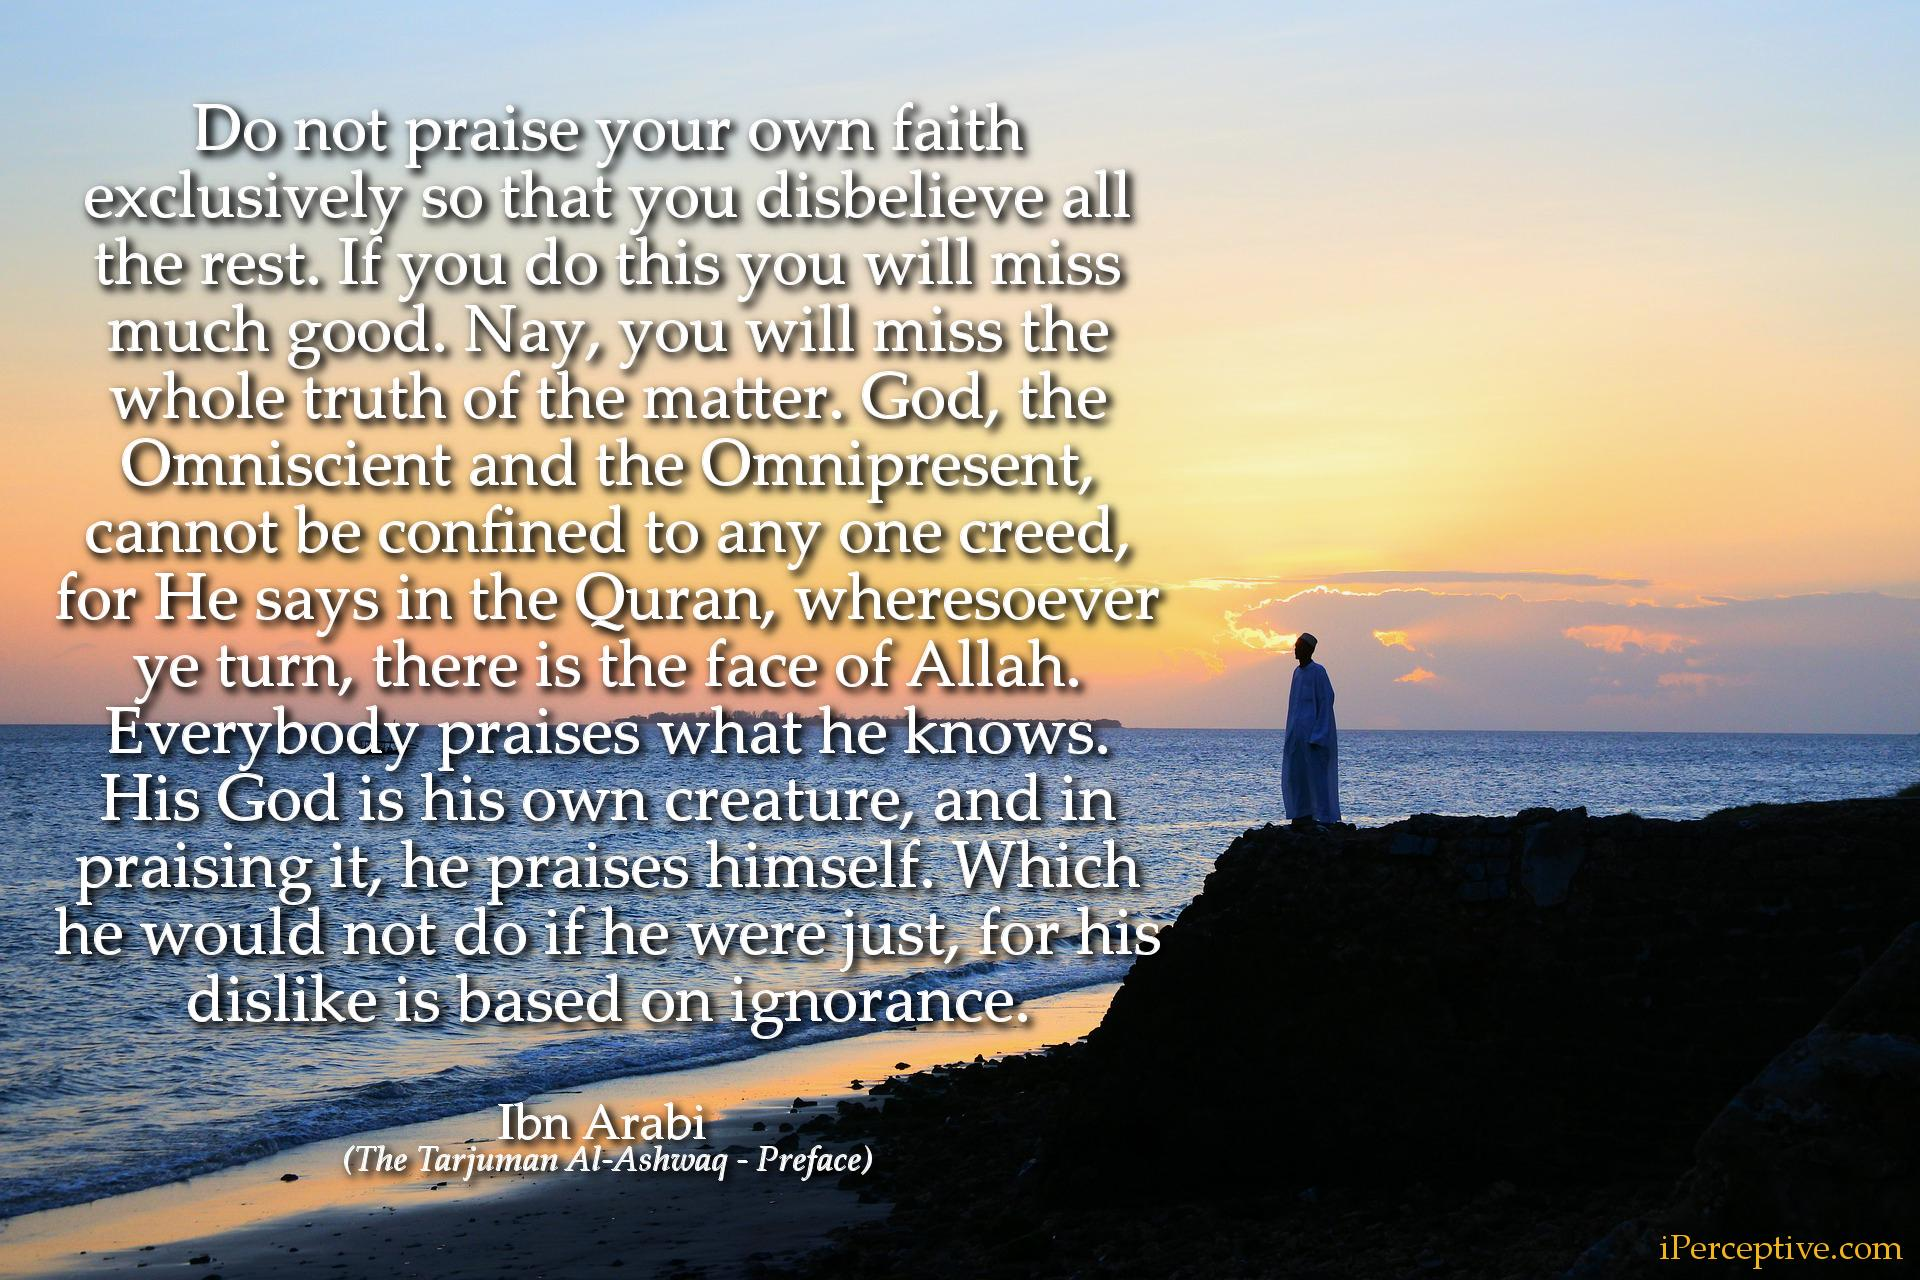 Ibn Arabi Quote: Do not praise your own faith exclusively so that you disbelieve all the rest. If you do this you...